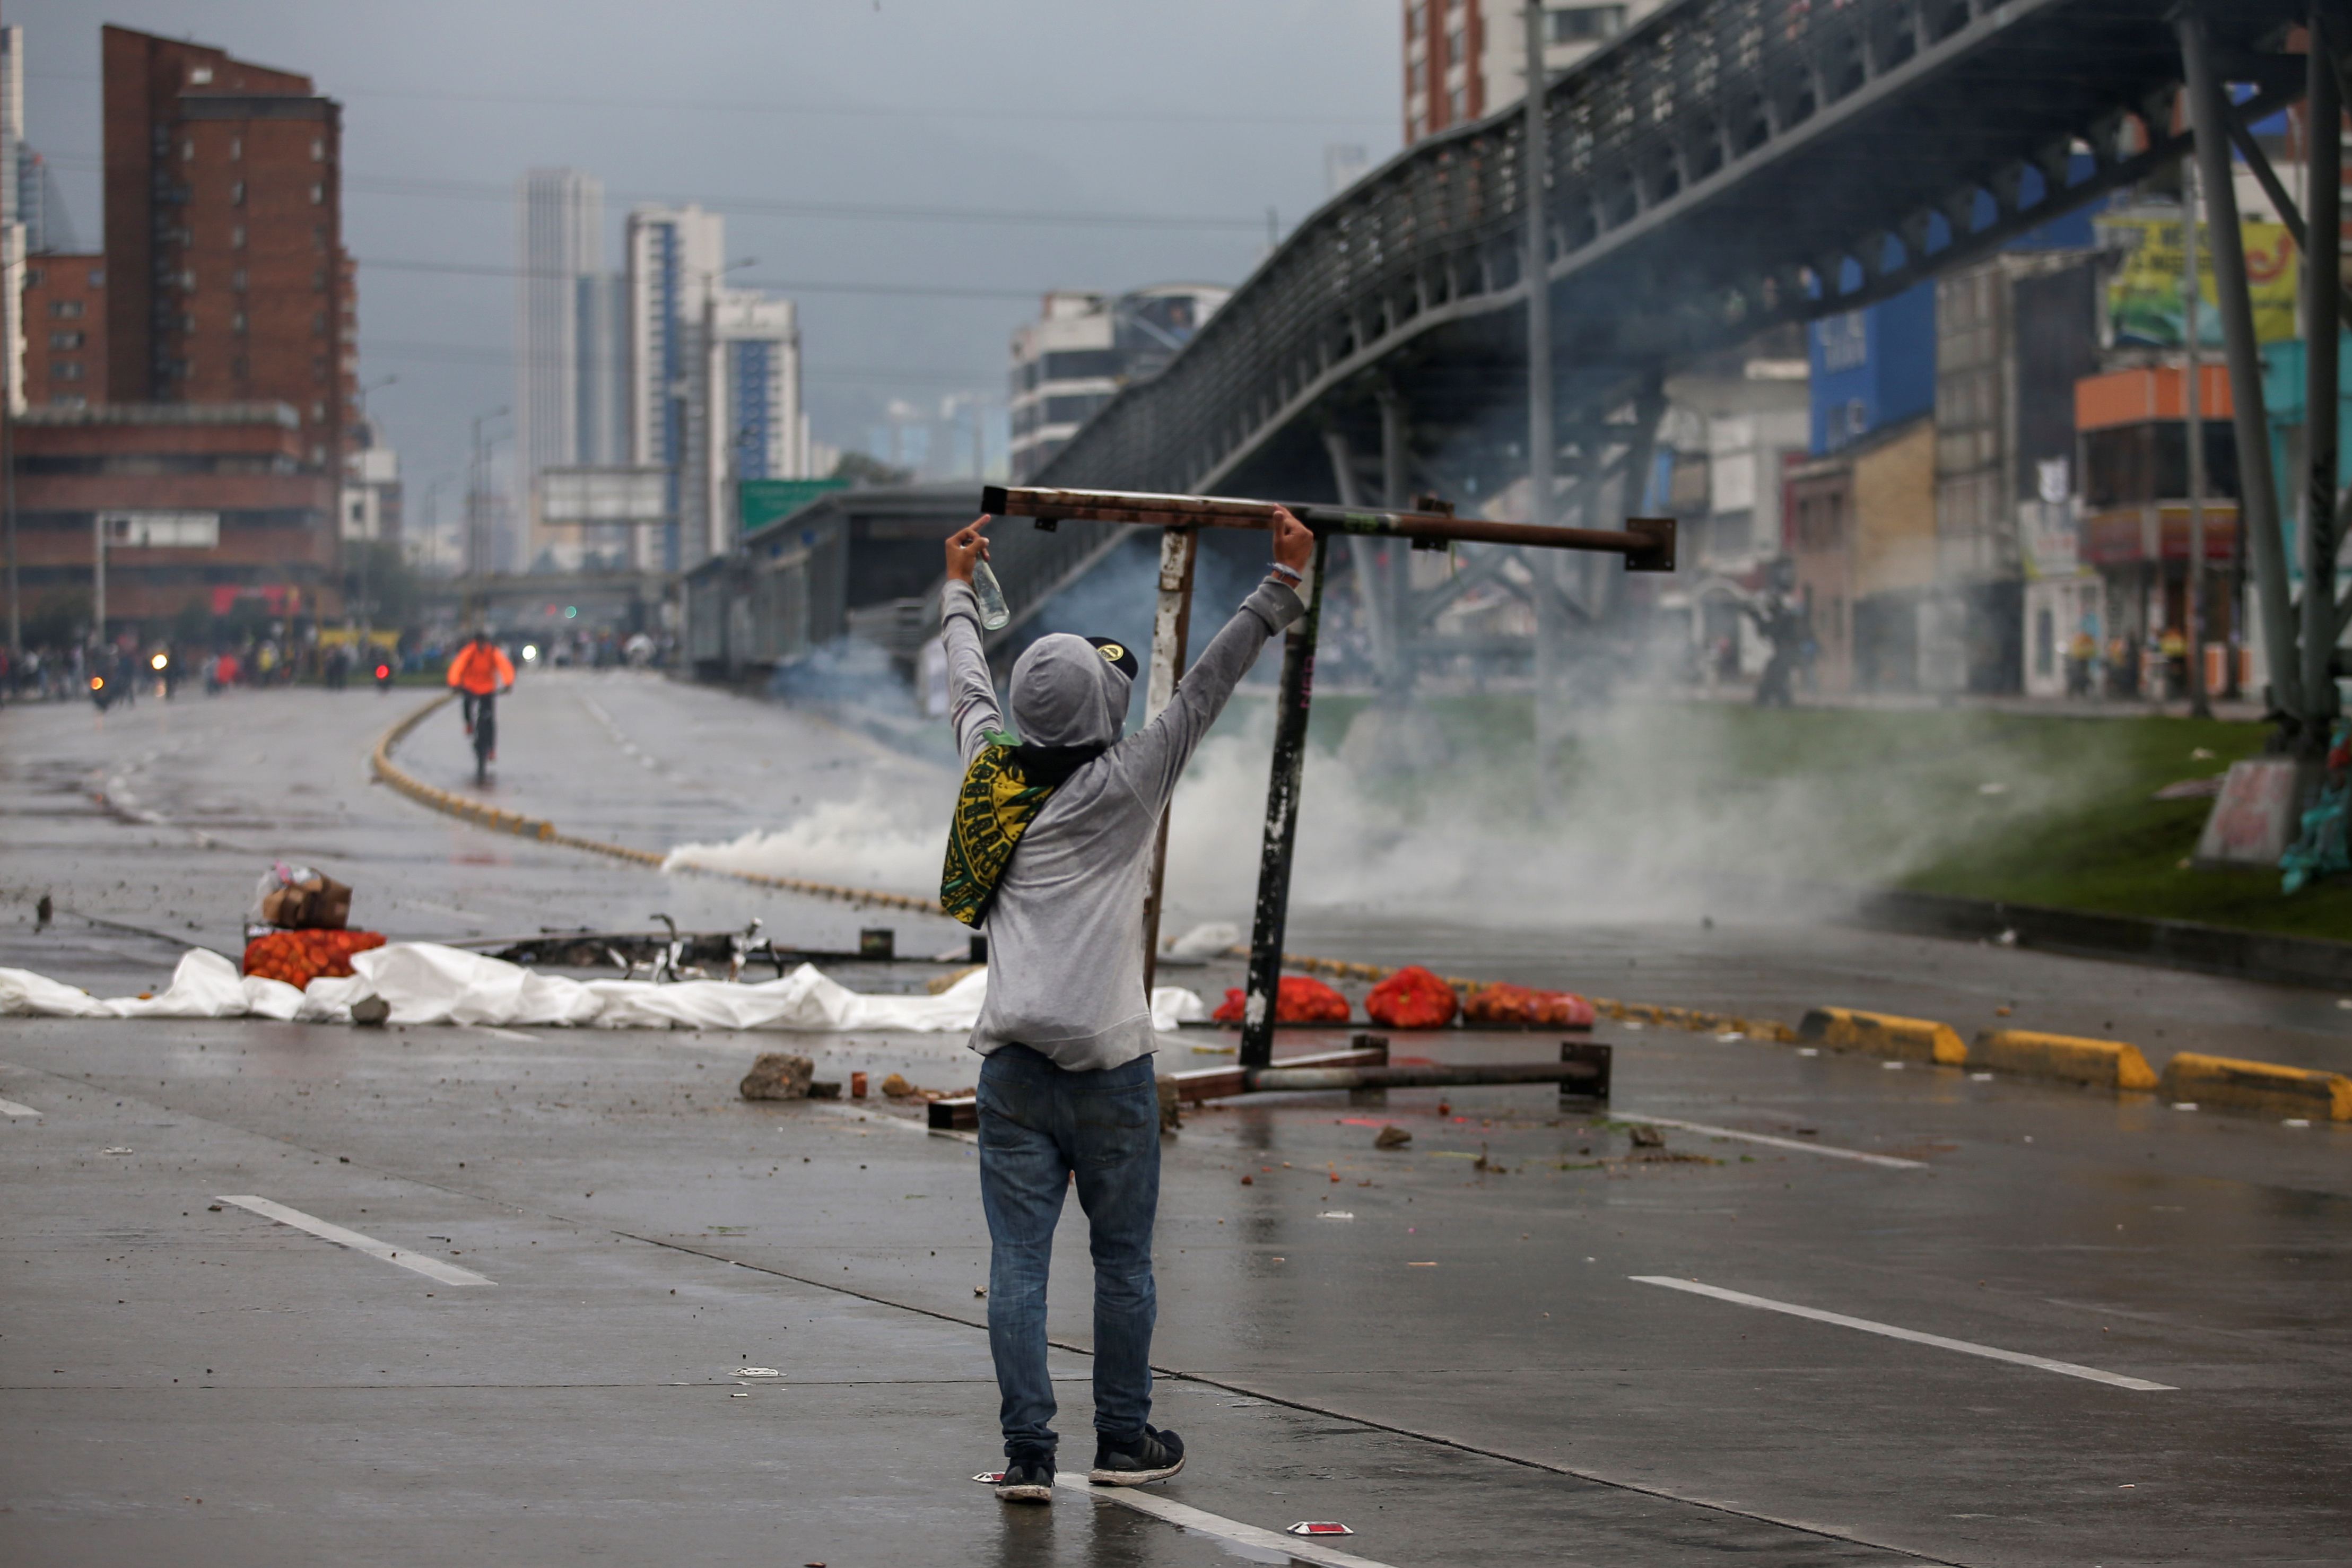 A demonstrator gestures to riot police during a protest in Bogota, Colombia, November 21, 2019. REUTERS/Luisa Gonzalez